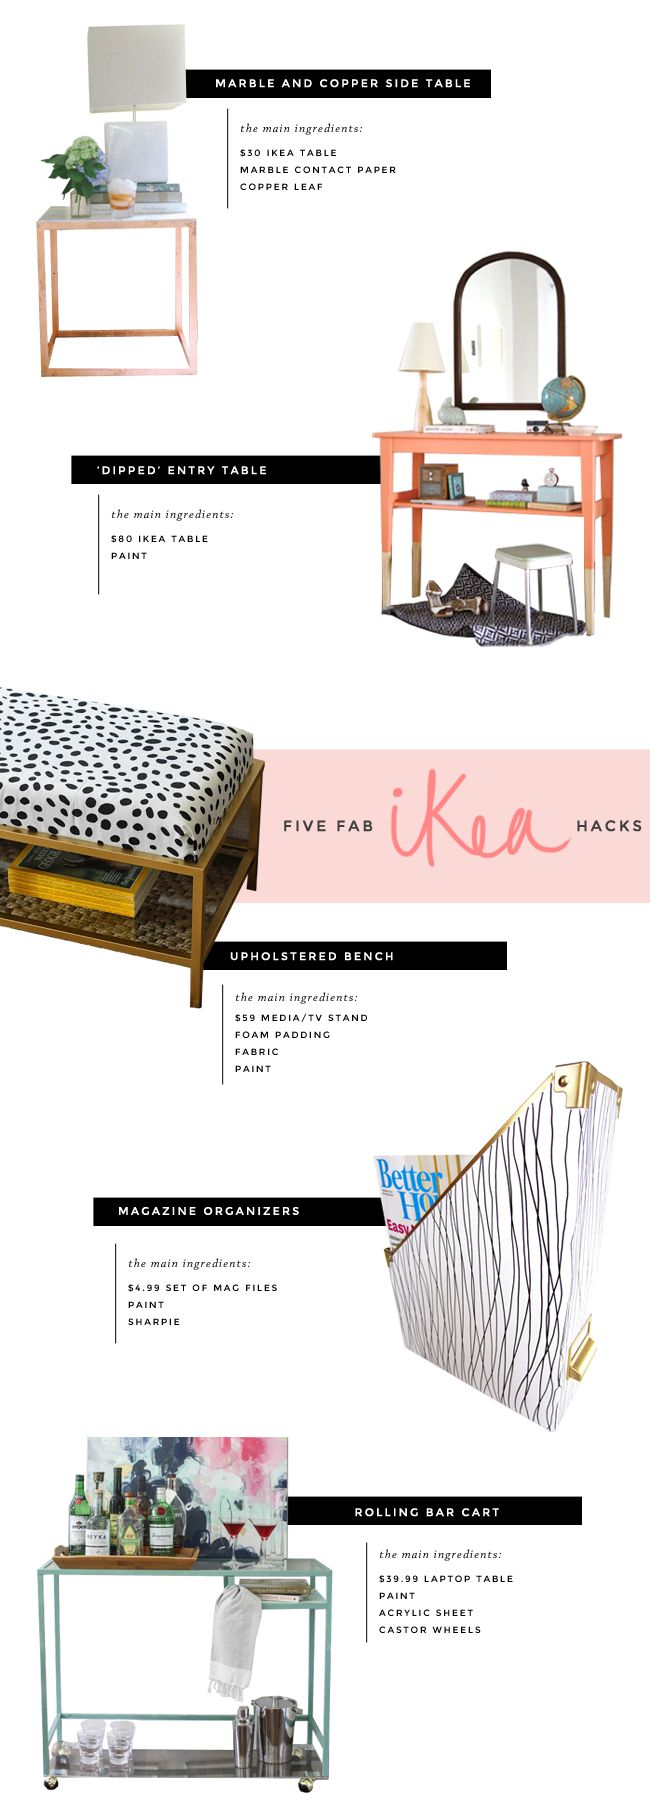 ikea hacks i could actually make